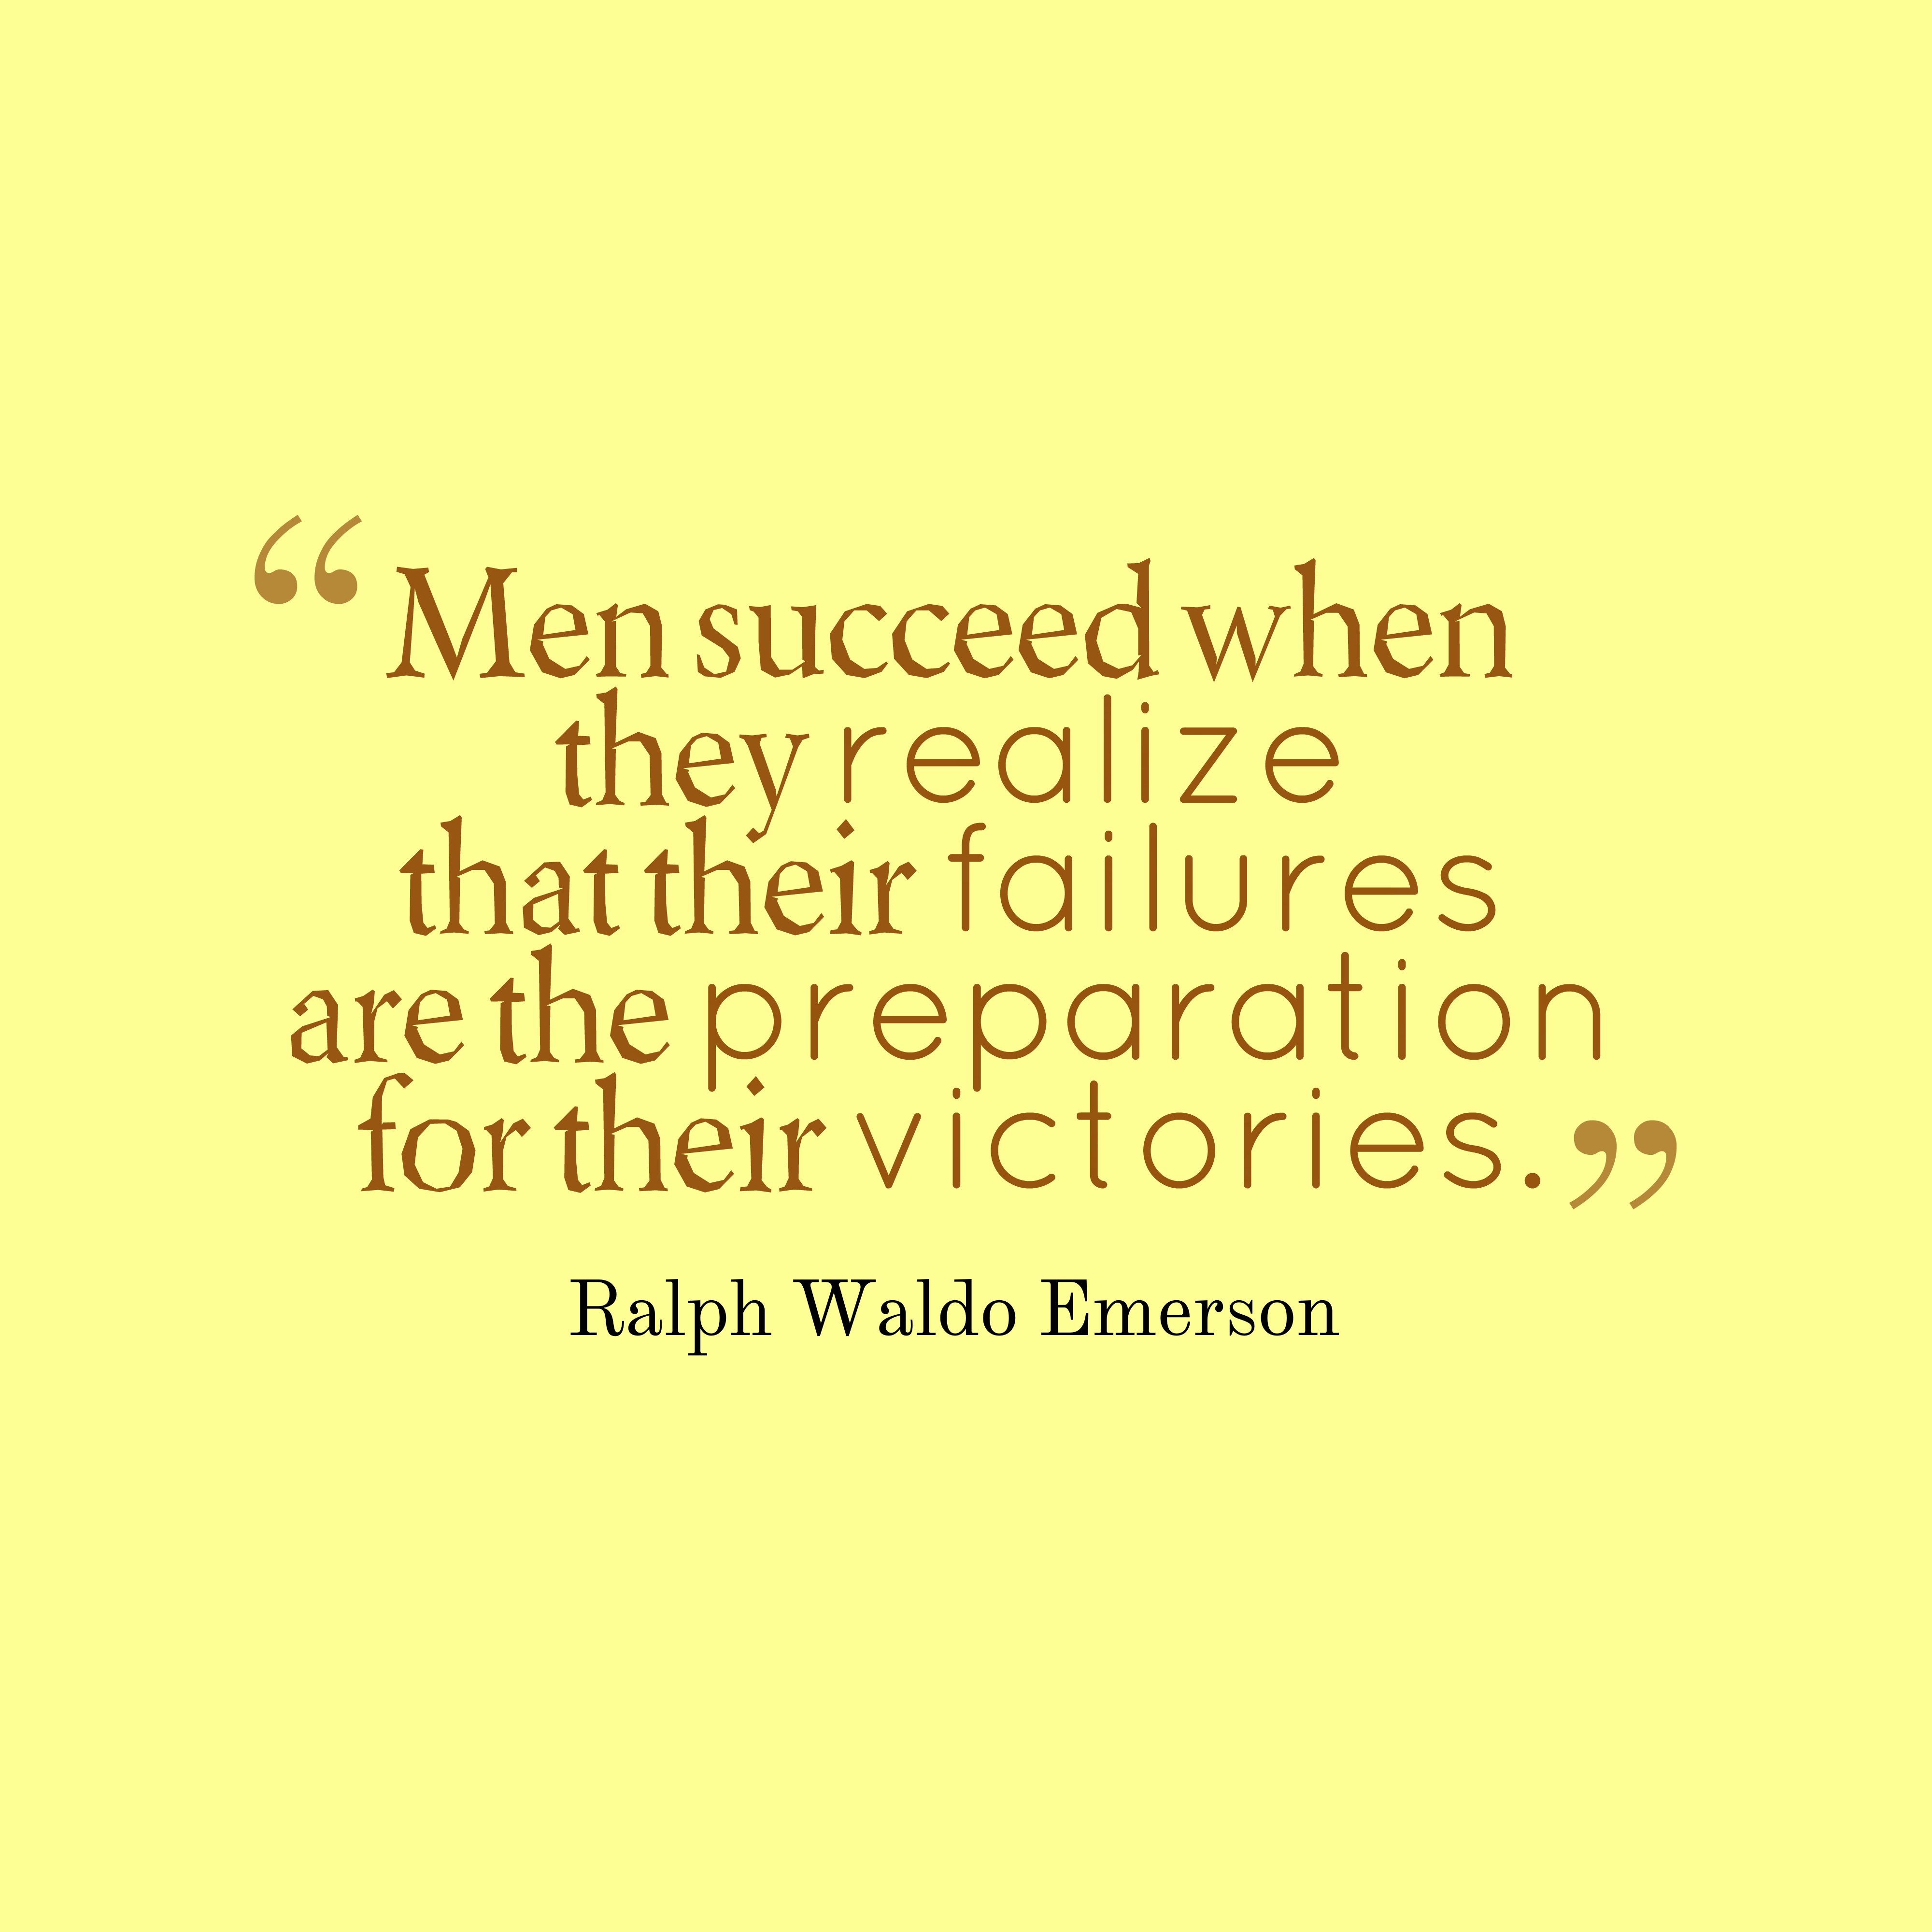 Quotes image of Men succeed when they realize that their failures are the preparation for their victories.